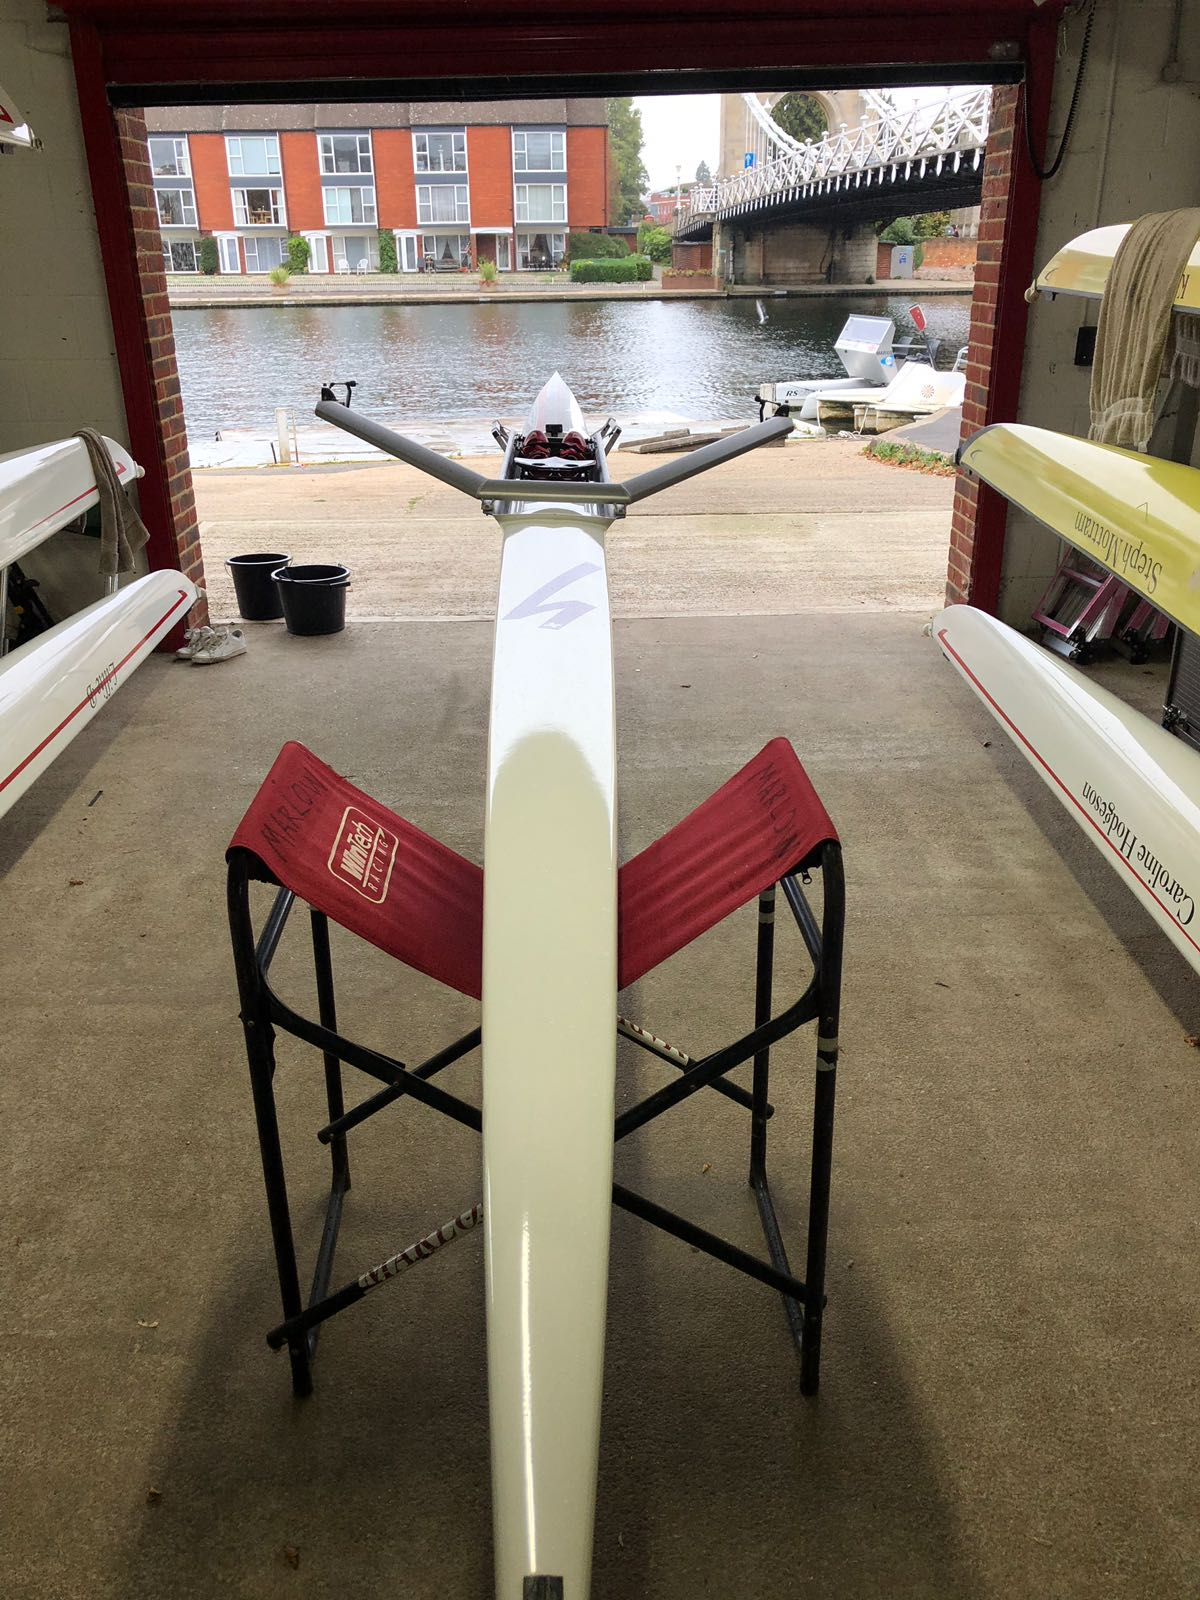 Stampfli S1  (75-85kg) For Sale with Concept 2 Blades, Boat bag and NK Speedcoach Gold